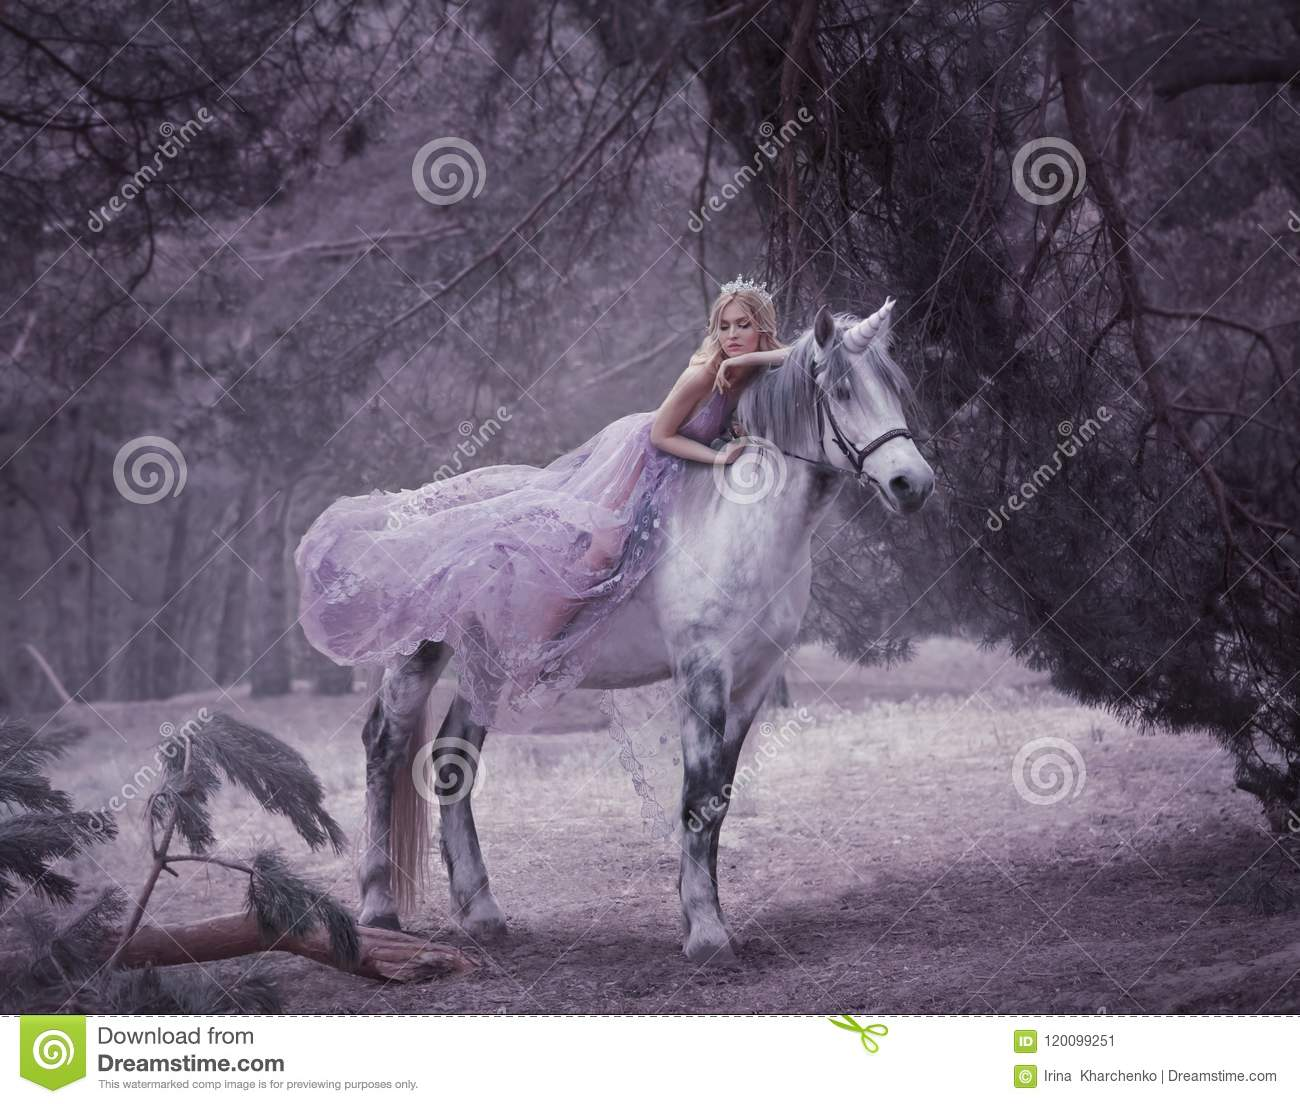 Download A Fairy In A Purple, Transparent Dress With A Long Flying Train Lies On A Unicorn. Sleeping Beauty. Blonde Girl Walking Stock Image - Image of beauty, blue: 120099251